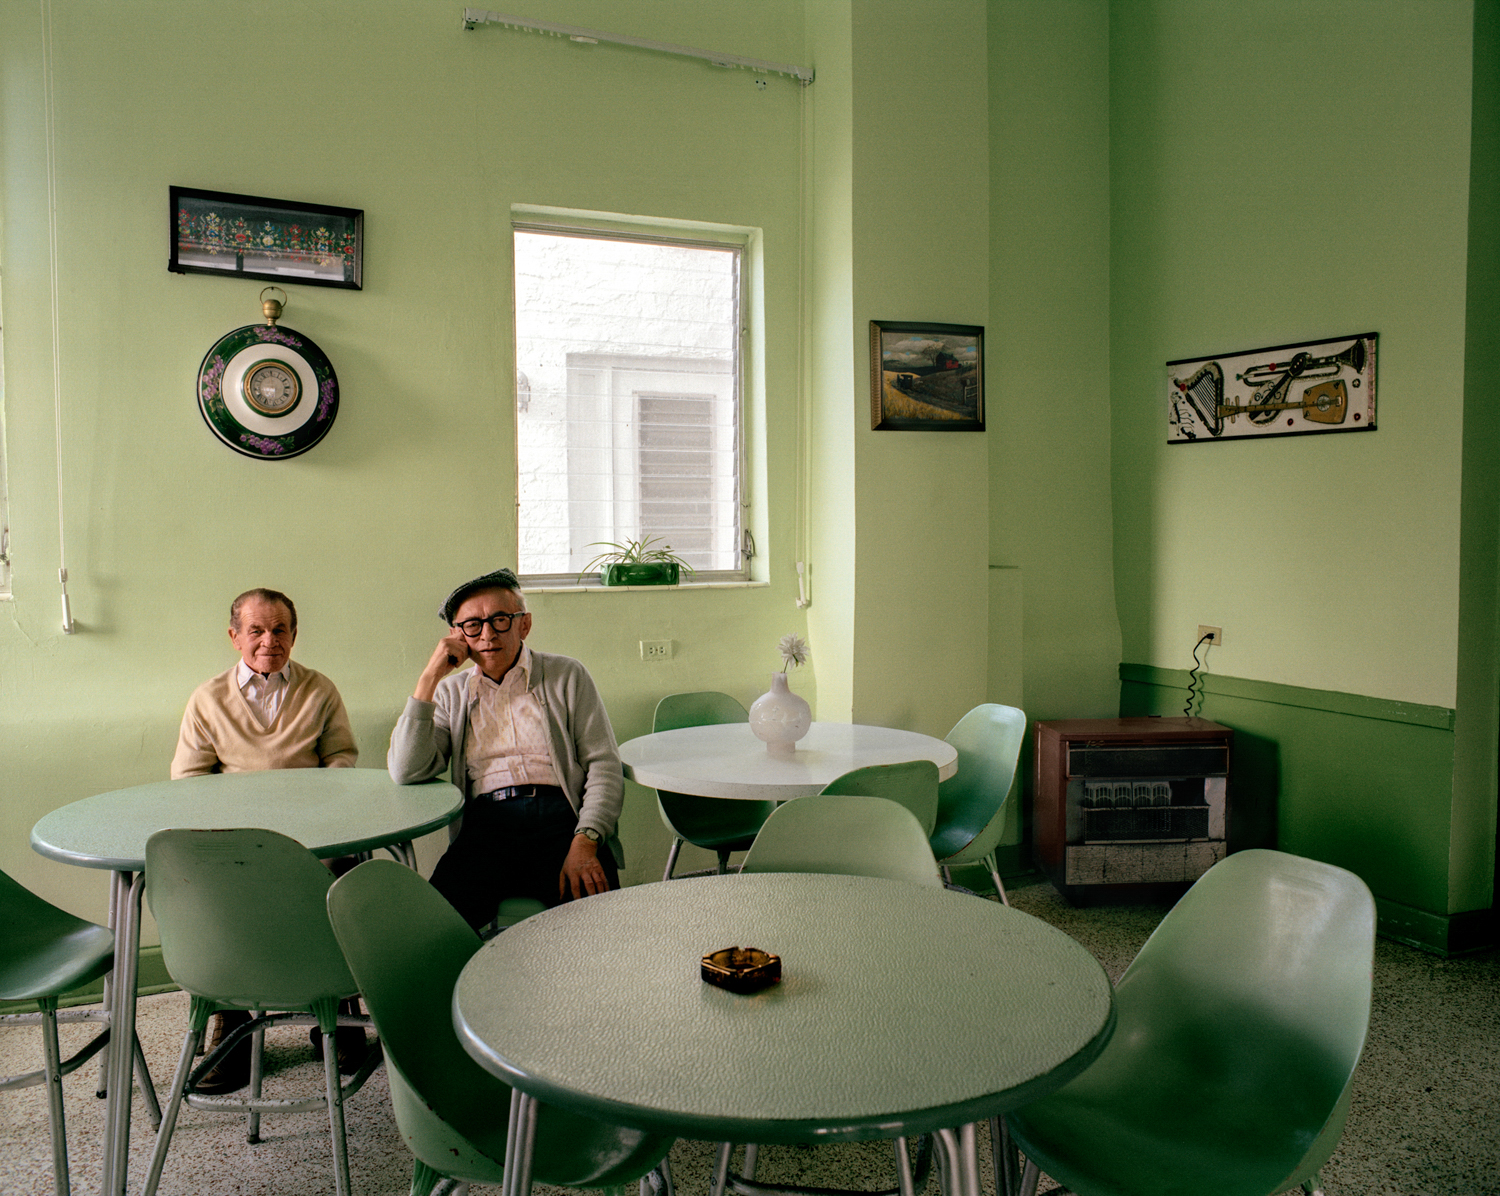 Untitled (Men in Green Room) Miami - South Beach 1982-85